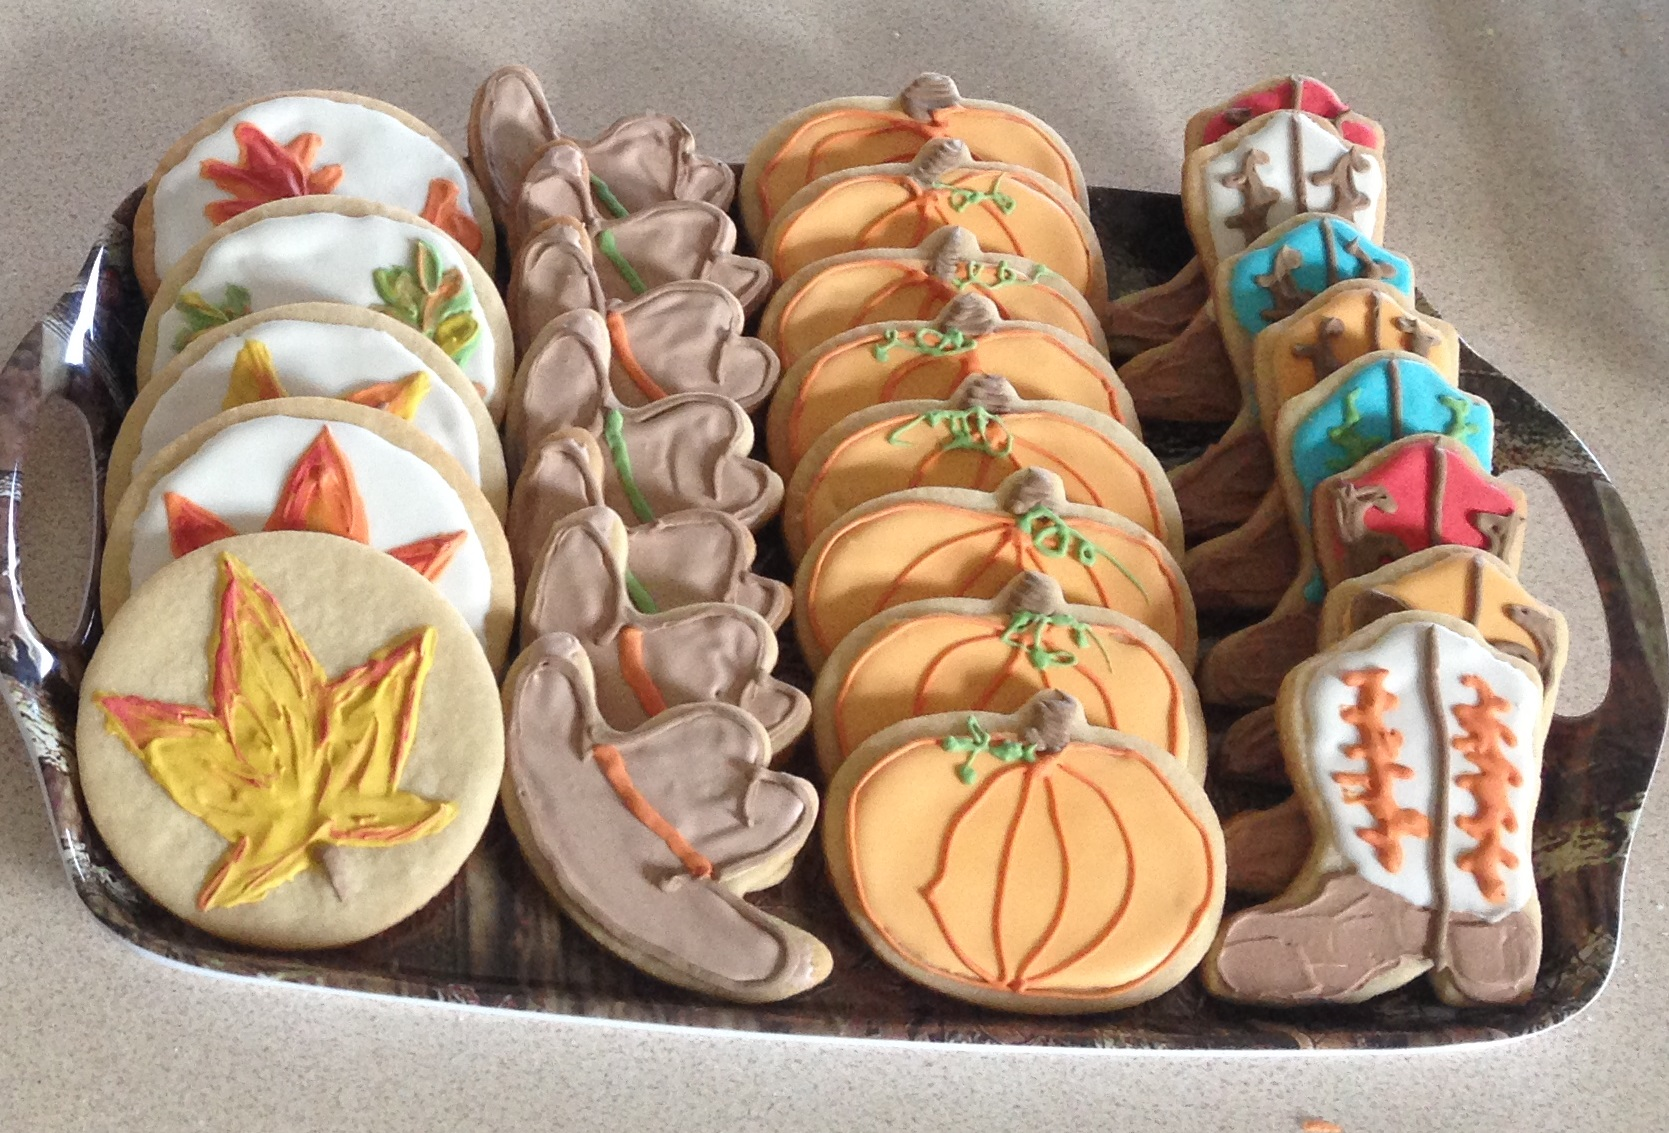 Fall Horse show cookies - Copy.JPG